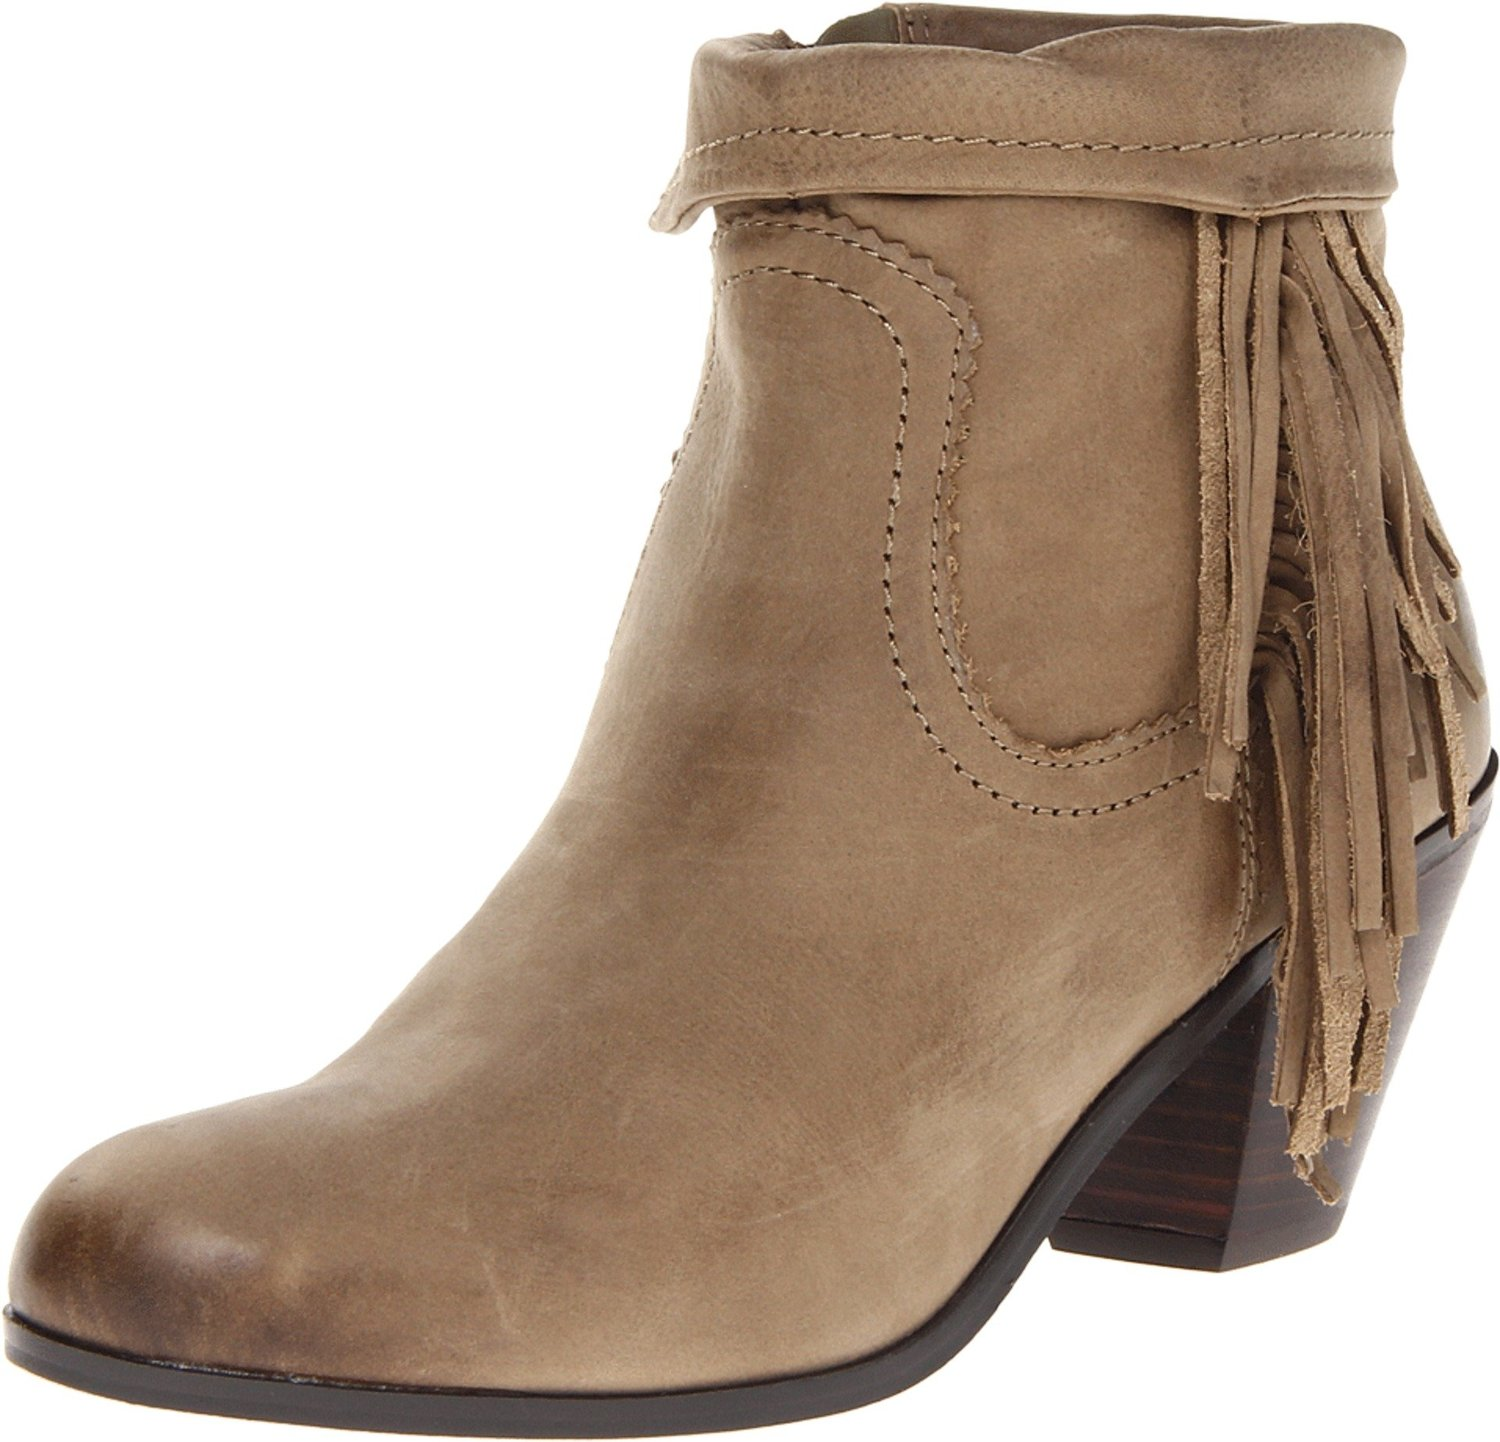 aff3c721833d Sam Edelman Louie Ankle Fringe Boot Olive leather